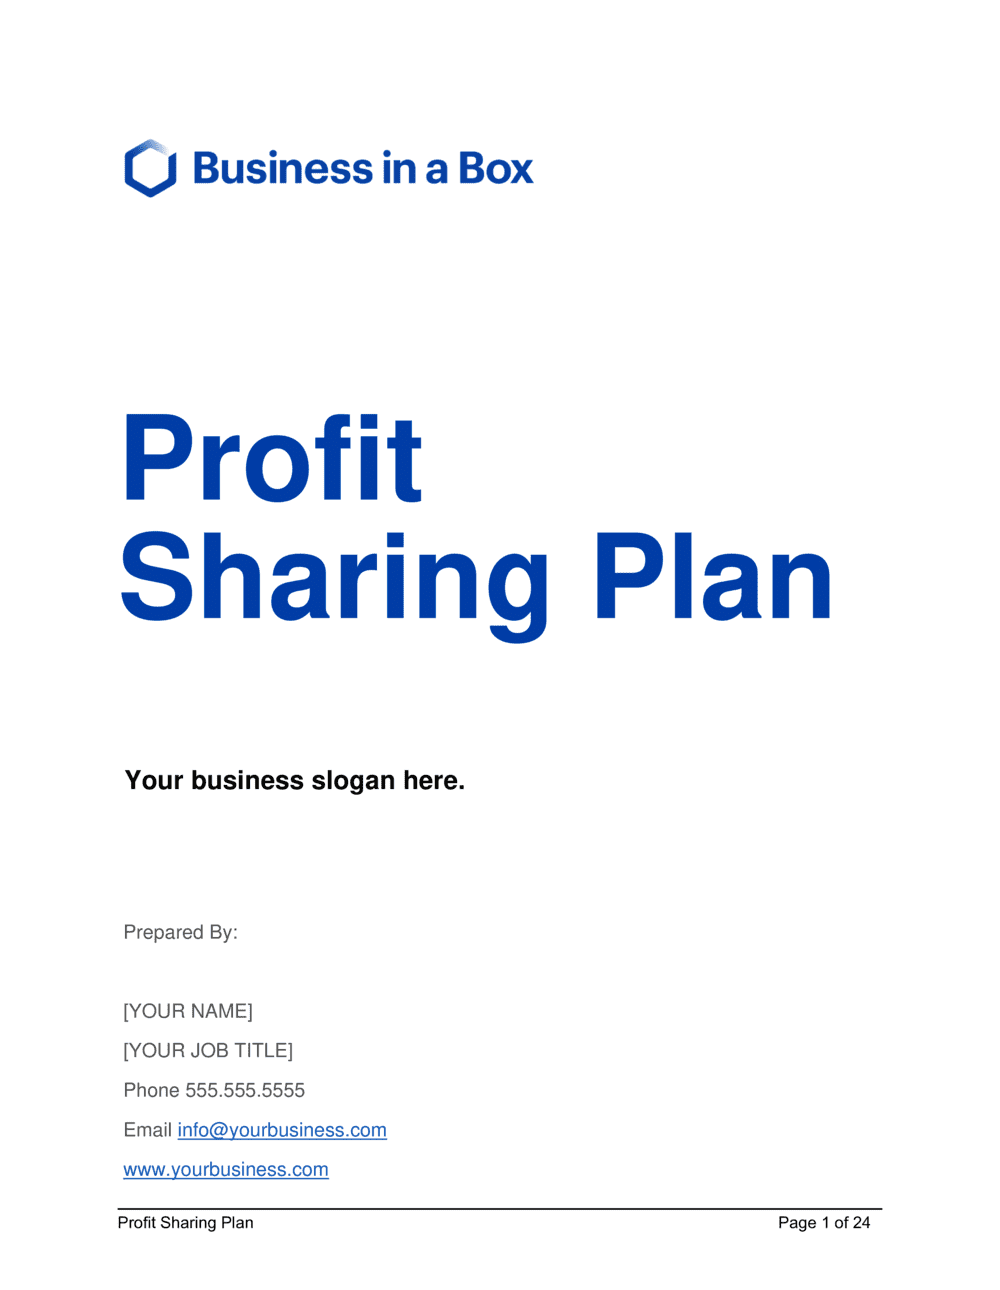 Business-in-a-Box's Profit Sharing Plan Template